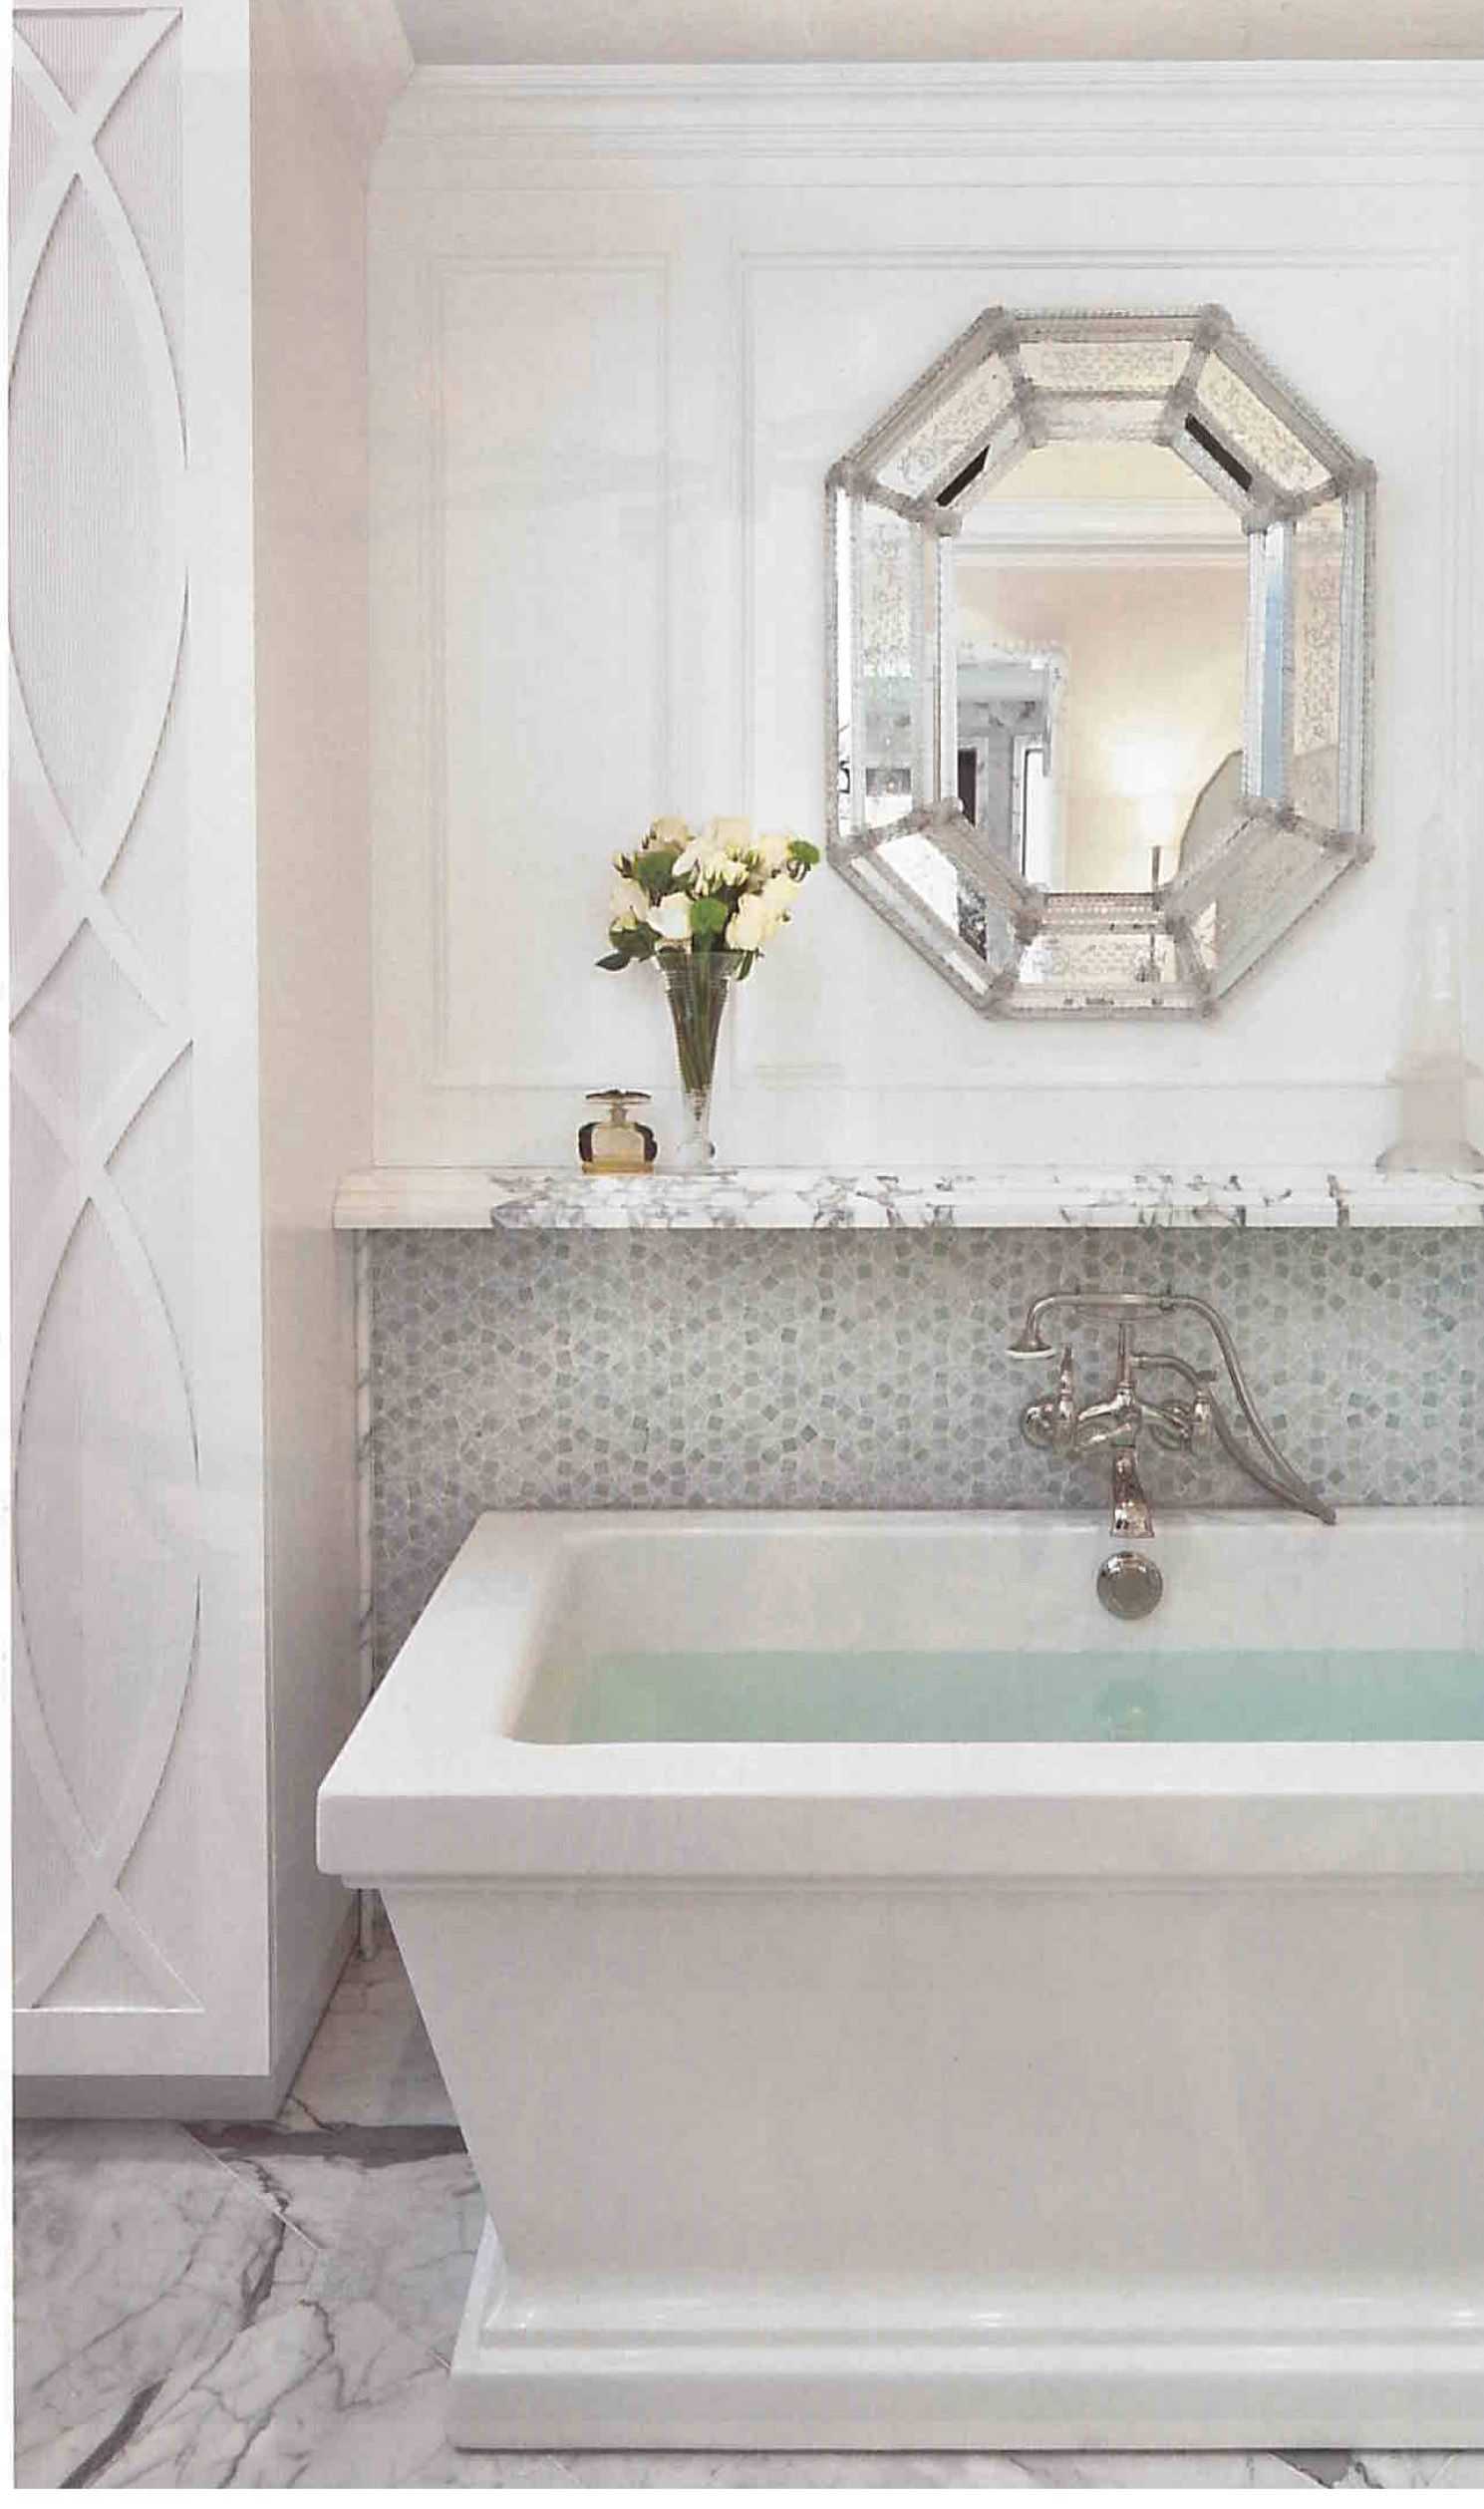 The perfect place to take a tub | Bathroom Envy | Pinterest | Tubs ...